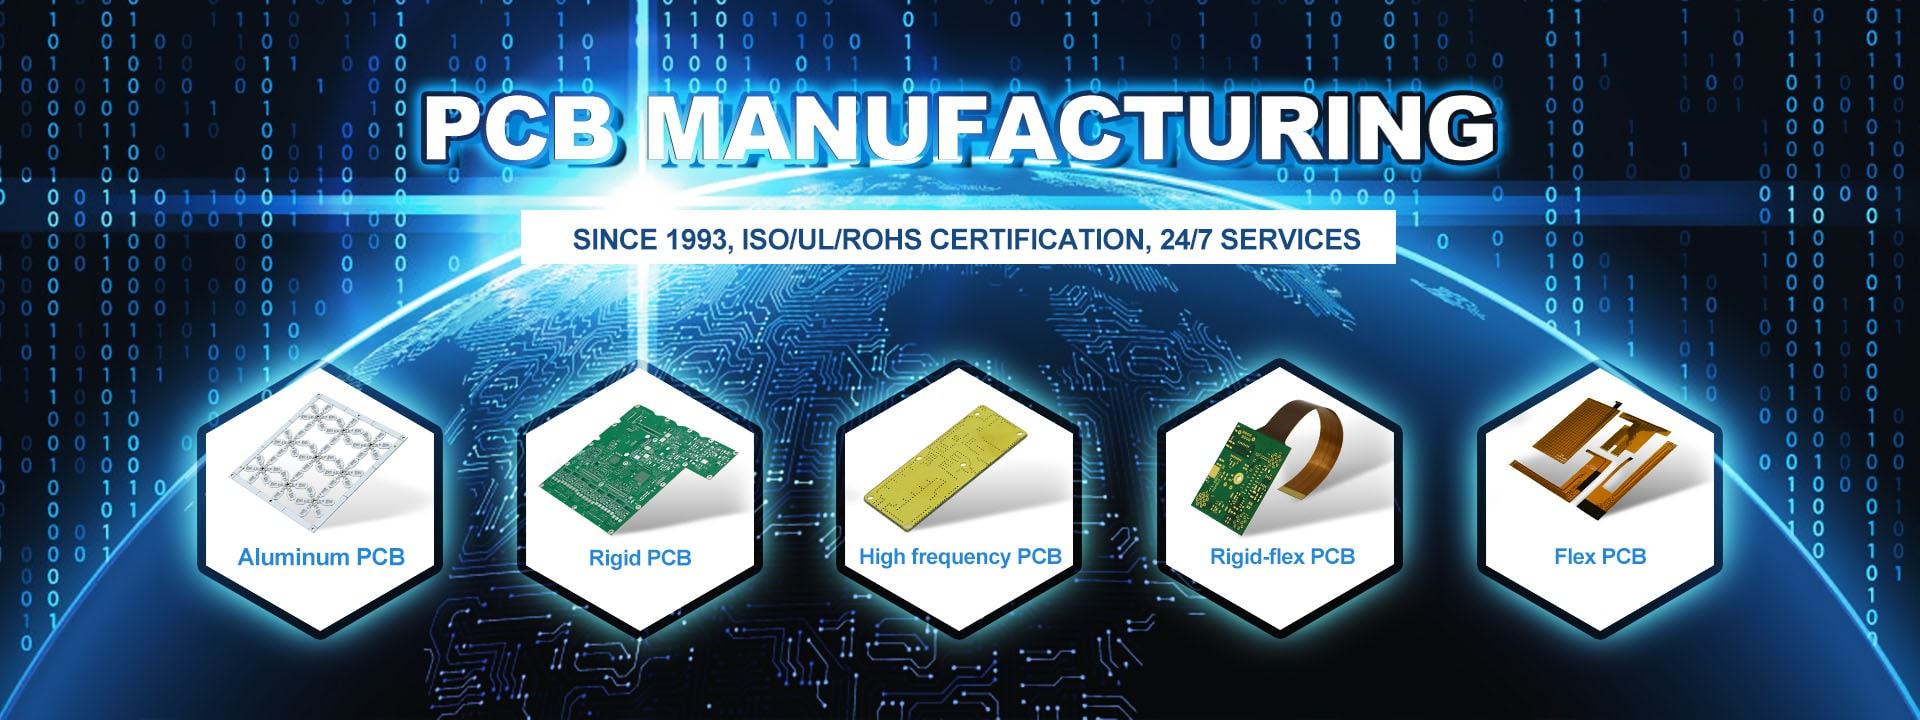 A 27 years PCB manufacturer, all boards are below budgets and beyond standards.